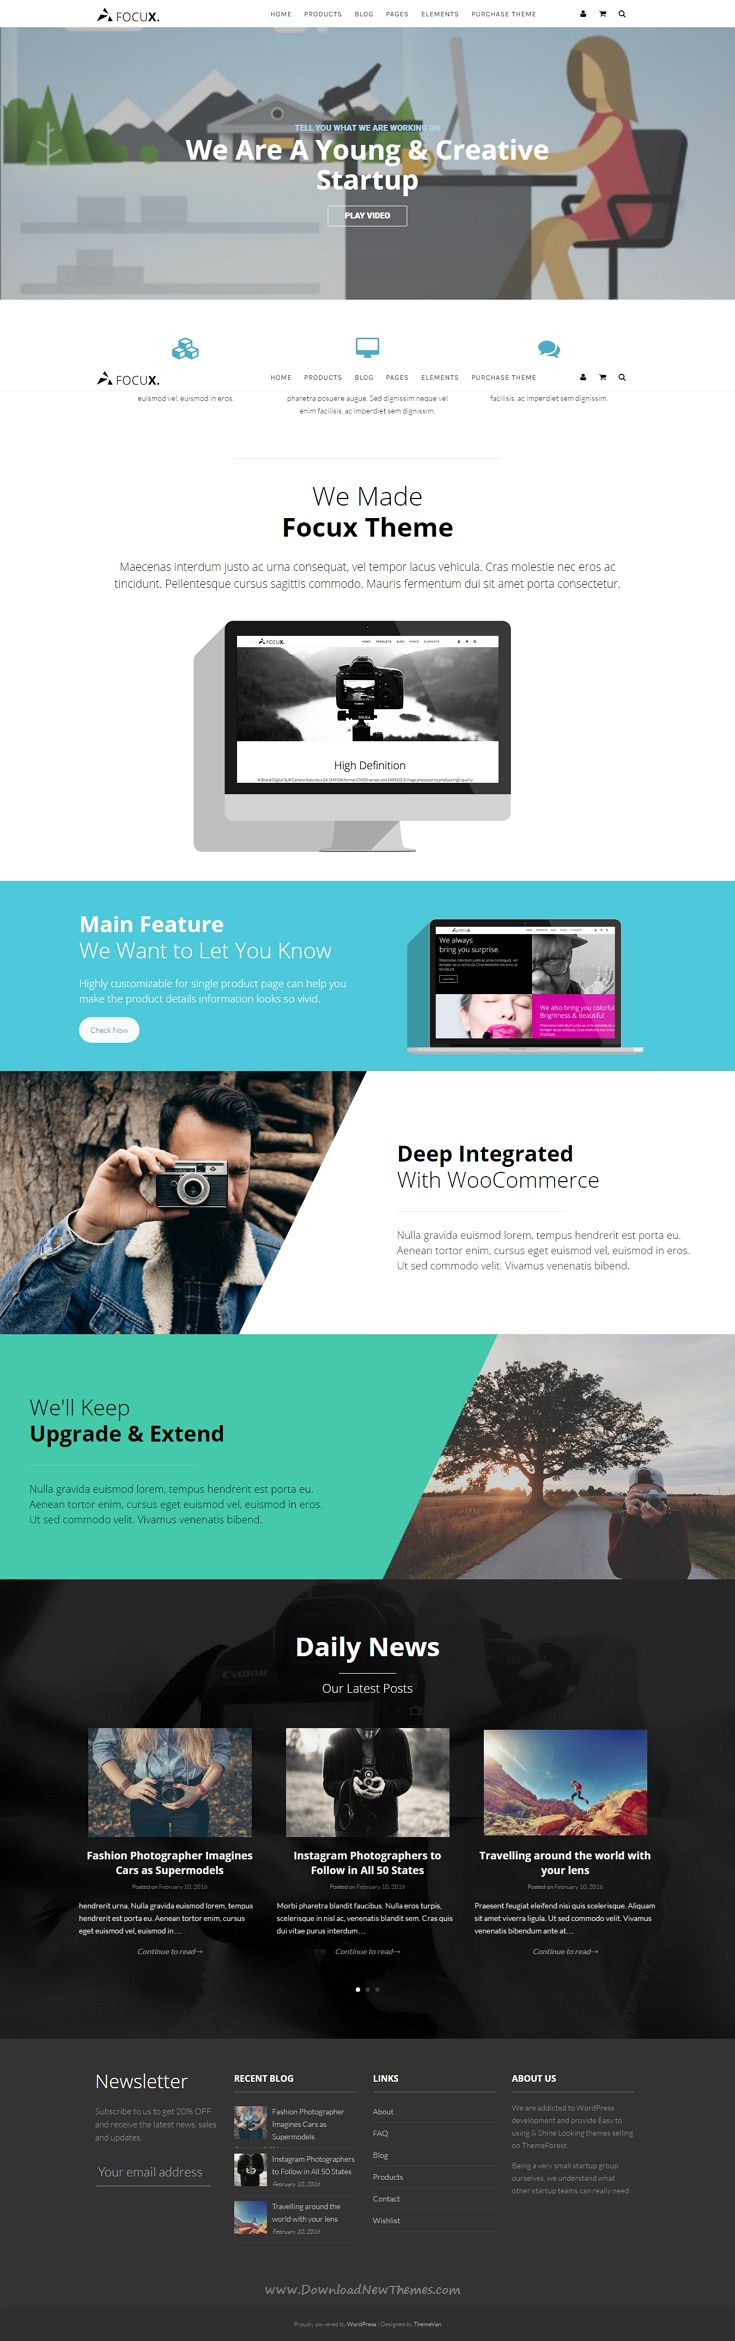 Focux is a multipurpose single product WooCommerce WordPress theme. It comes with  5 stunning prebulit homepage templates and 3 different single product templates